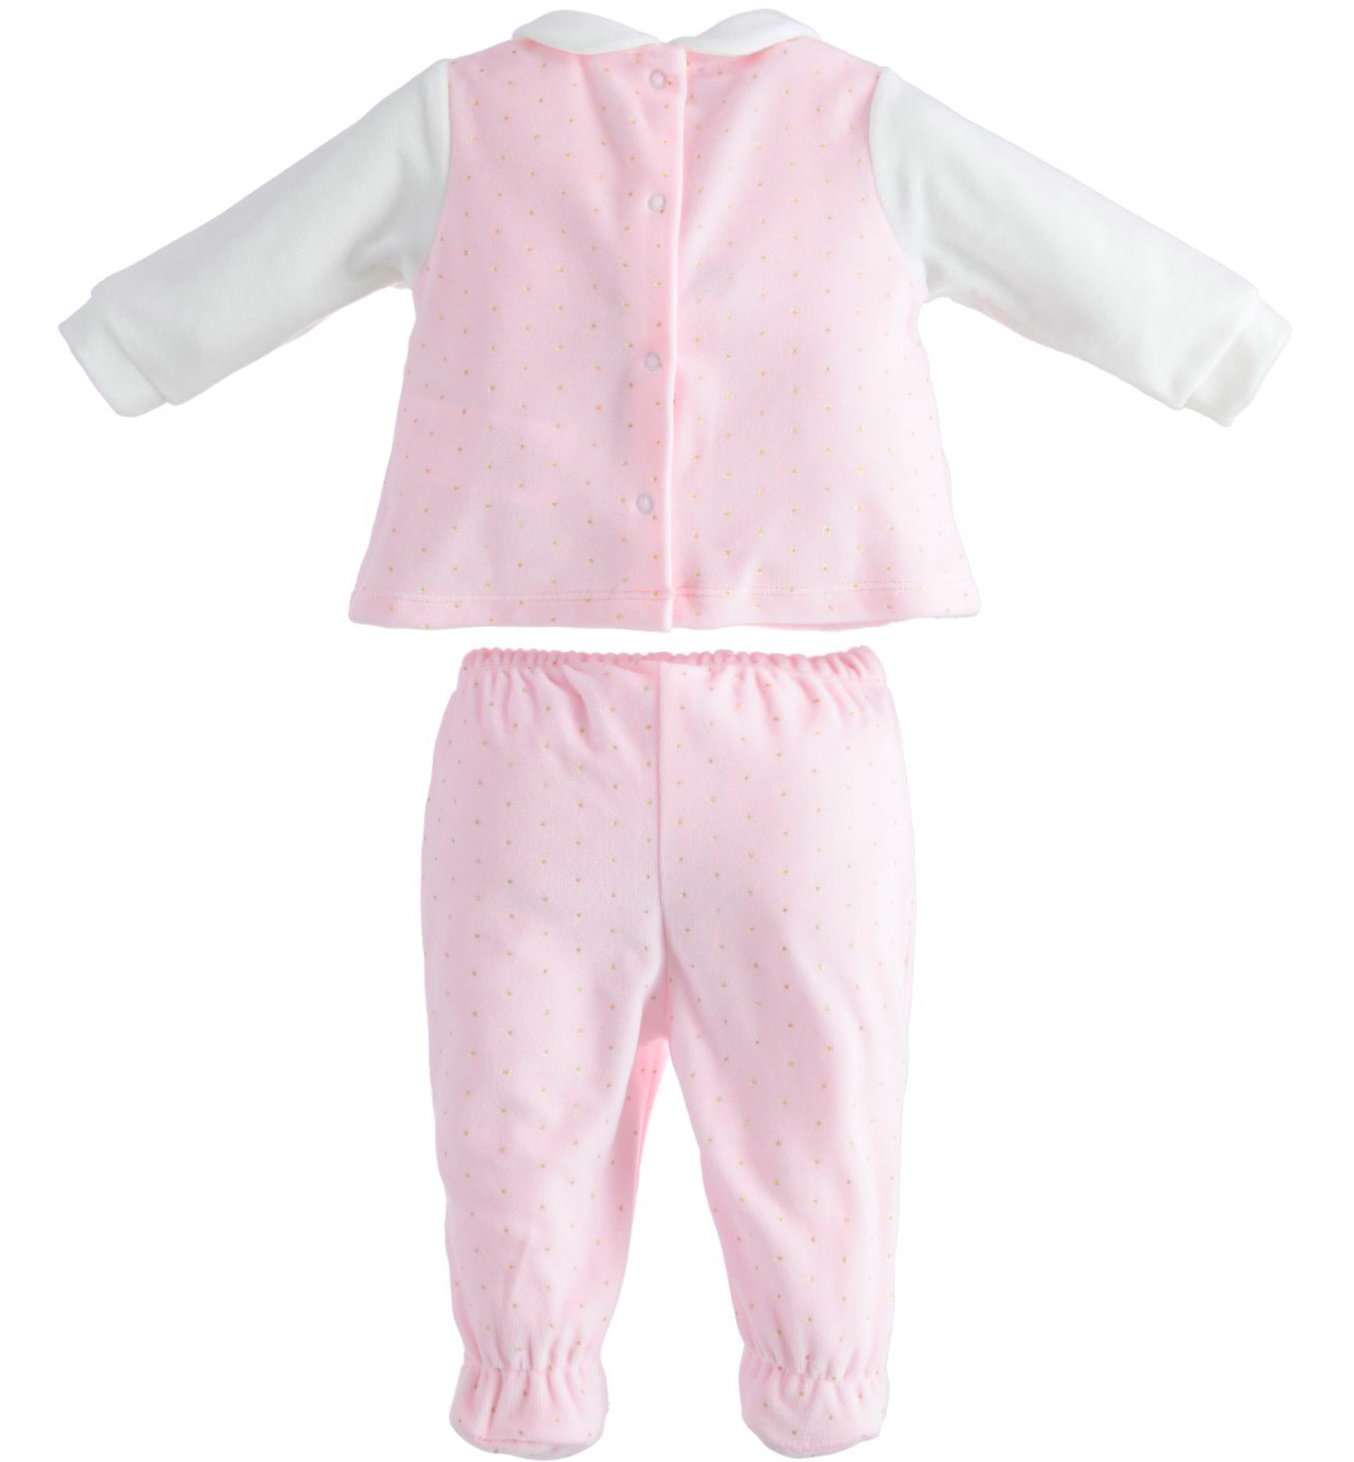 iDO Pink and White Velour Two Piece - 43250